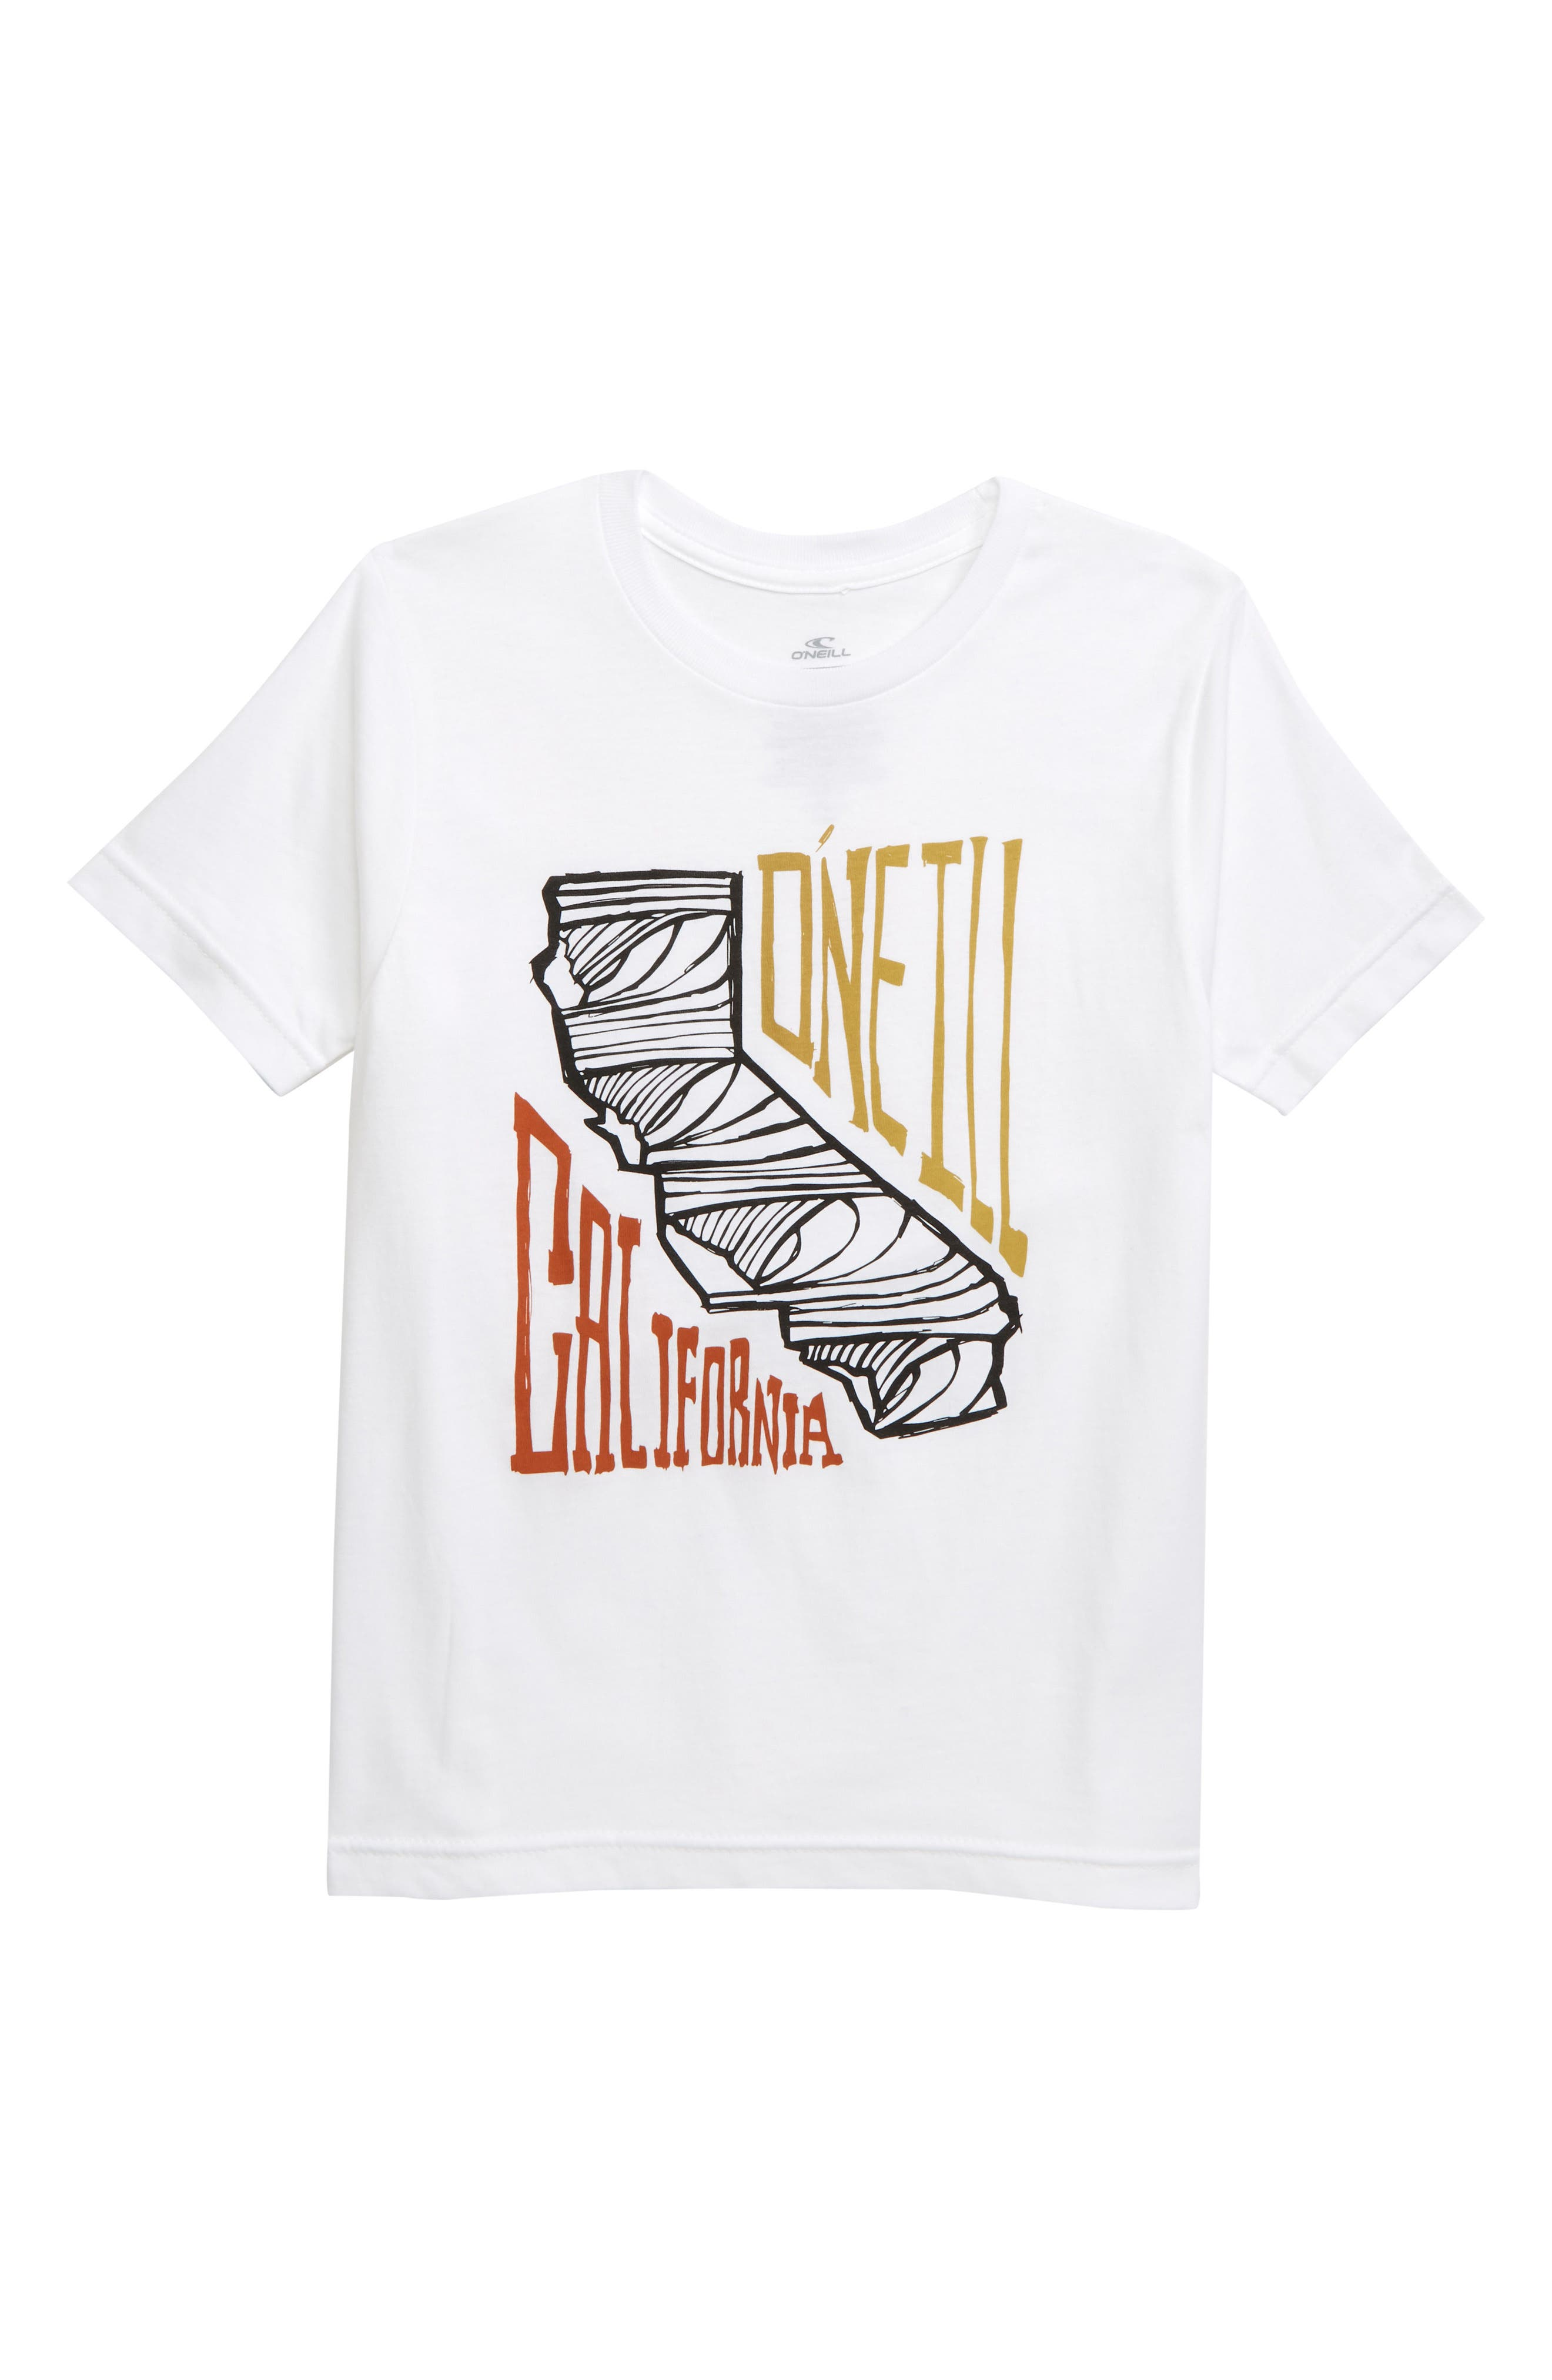 ONEILL Boys Big Modern Fit Front and Back Graphic Tee